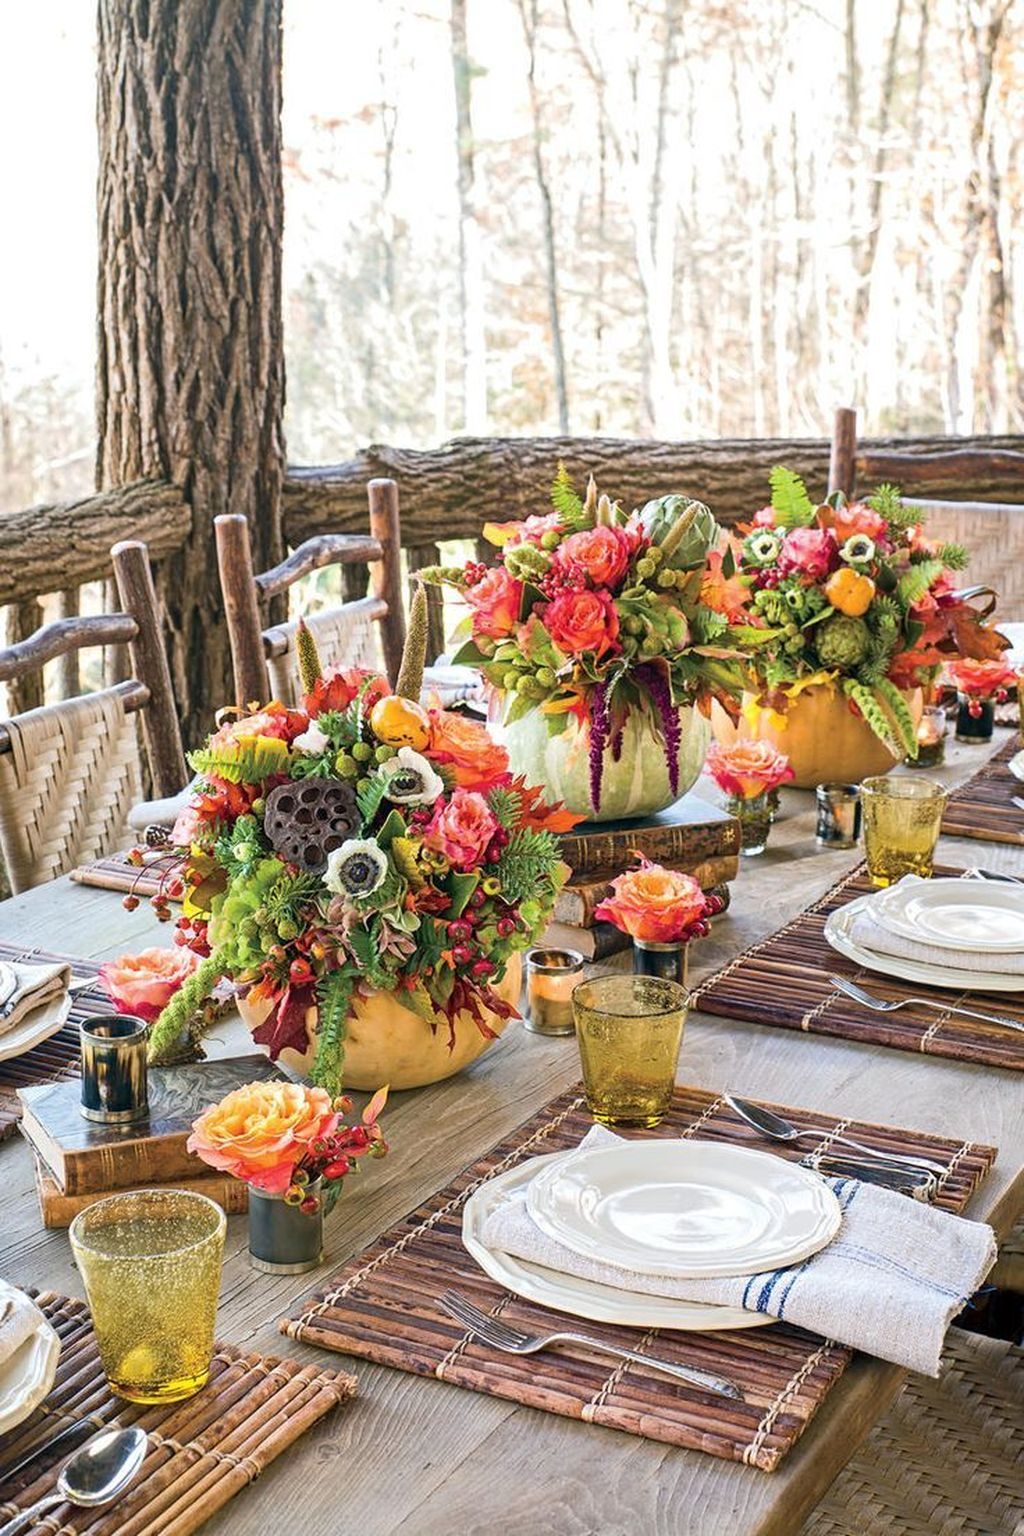 Awesome Fall Table Decorations Ideas You Should Apply This Year 09